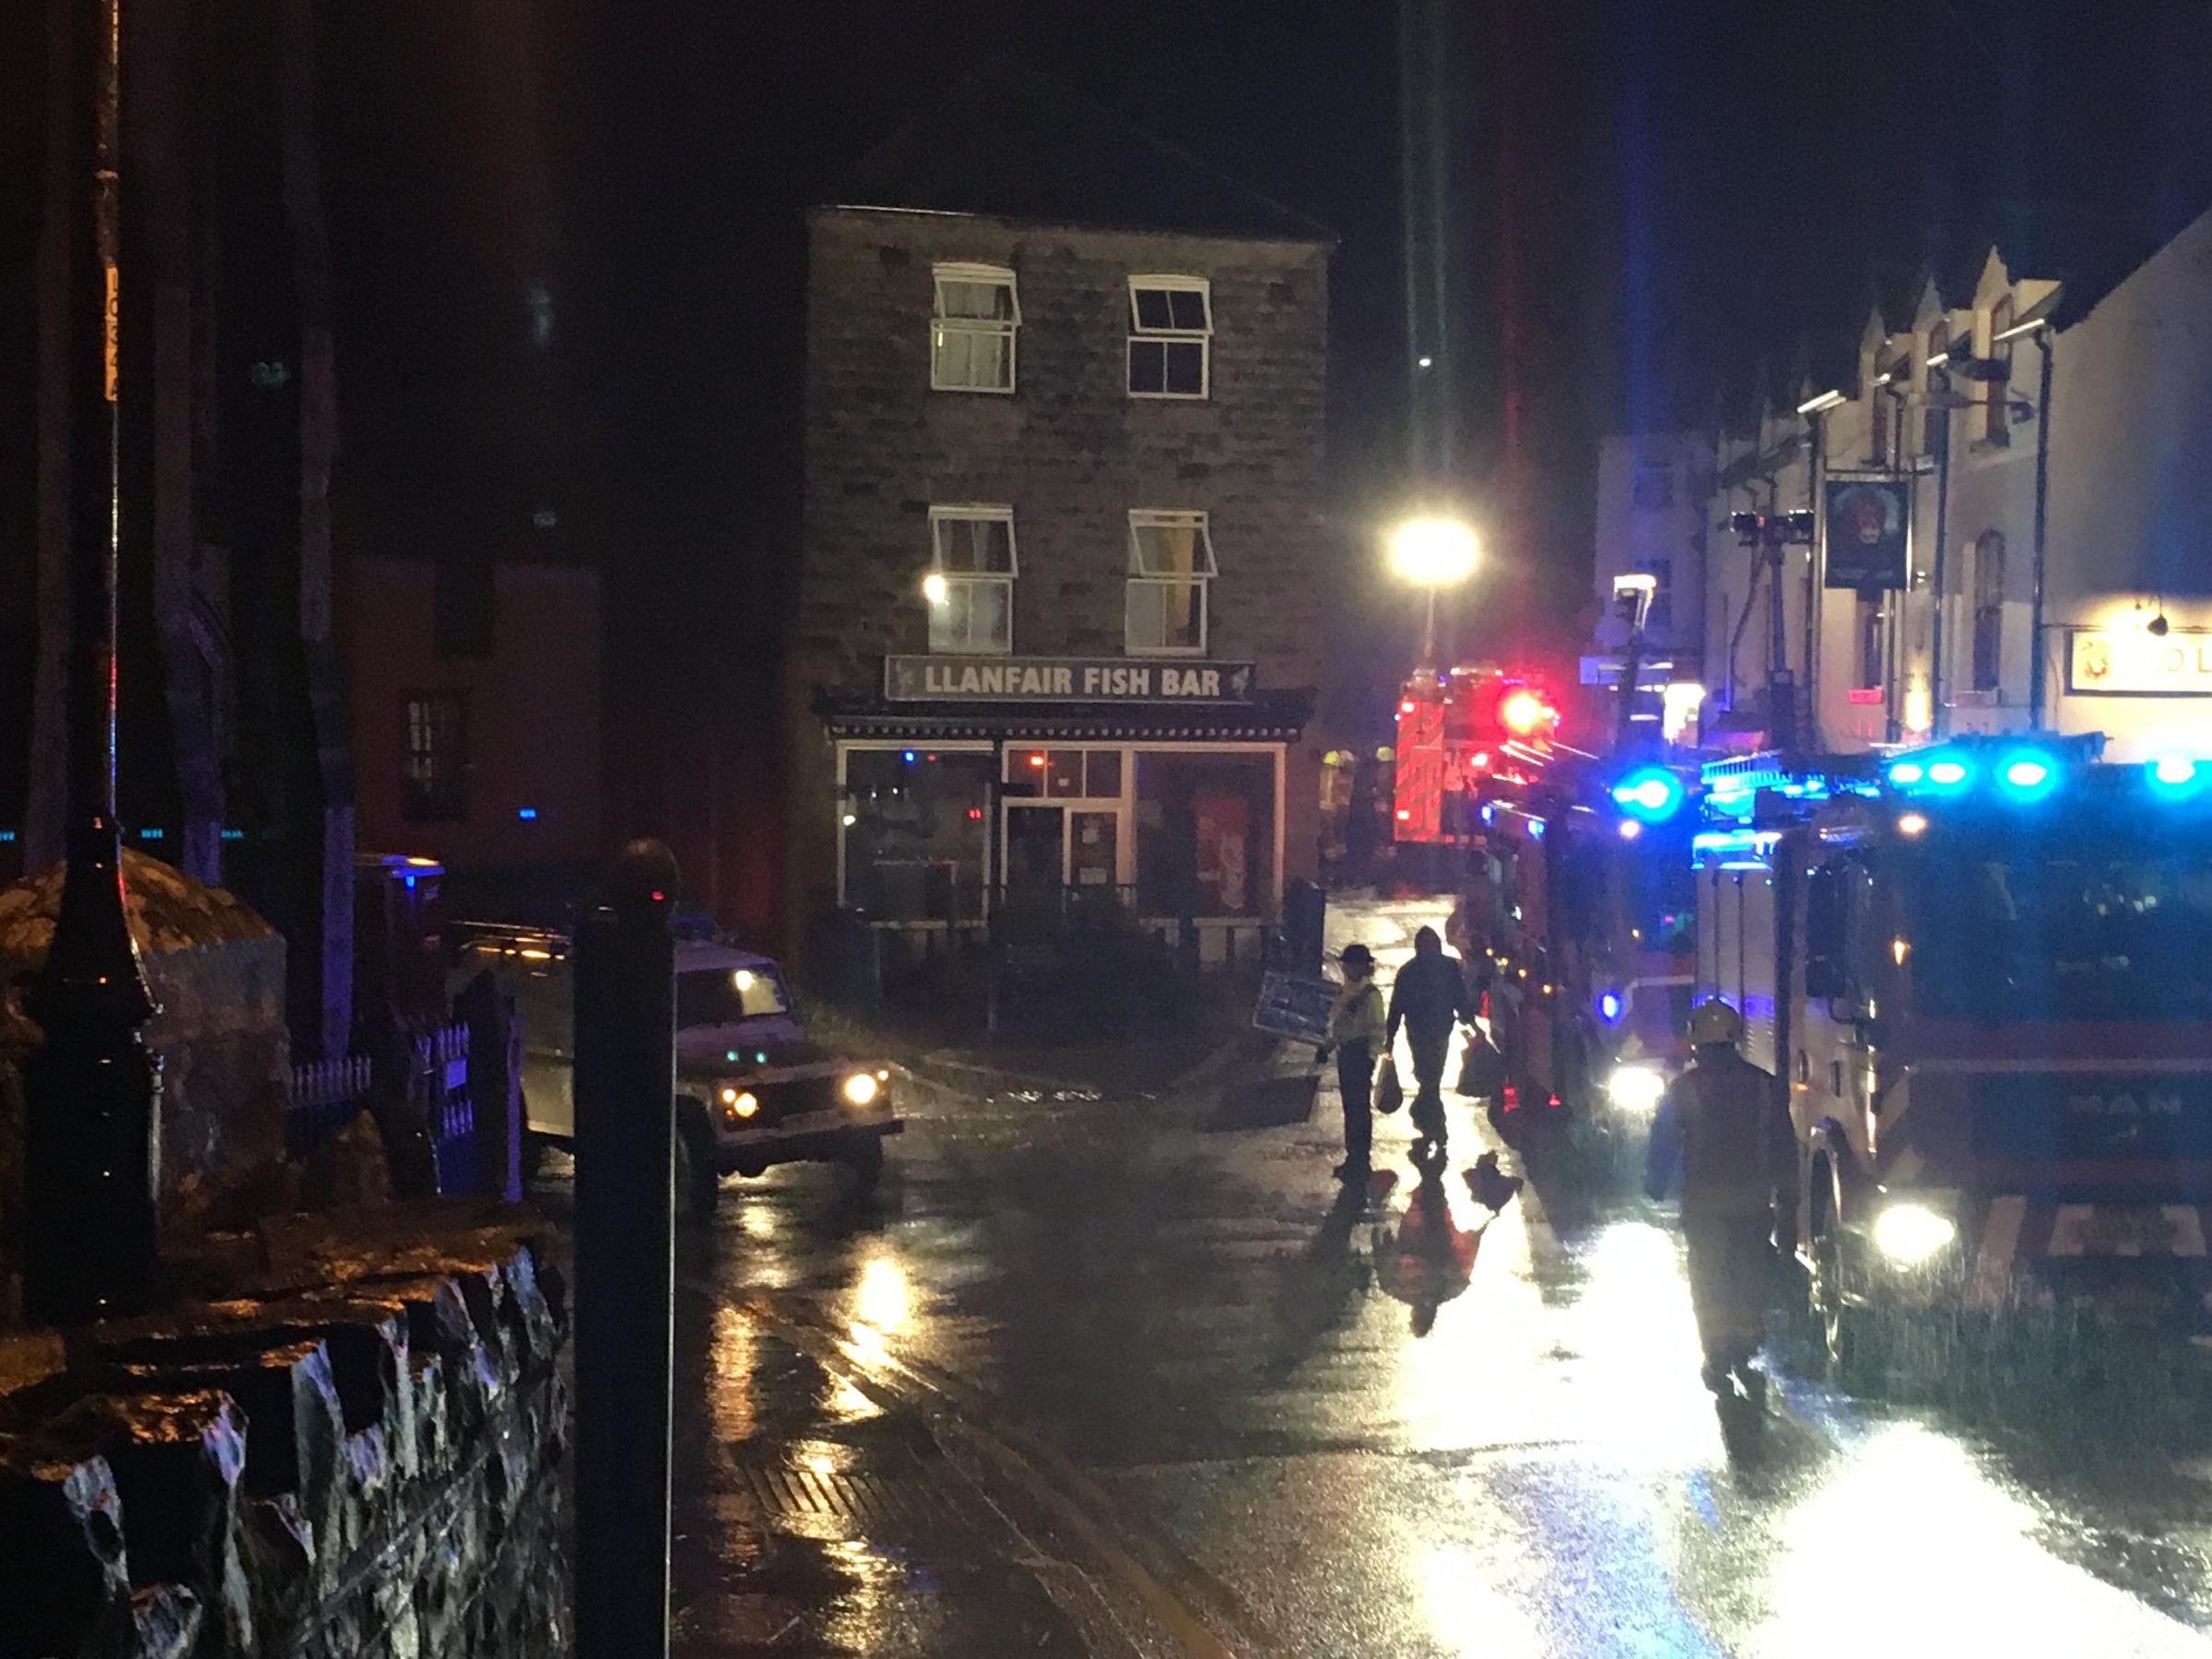 Llanfair Caereinion Town Centre where the Fish Bar Chip Shop was on fire on Thursday evening.